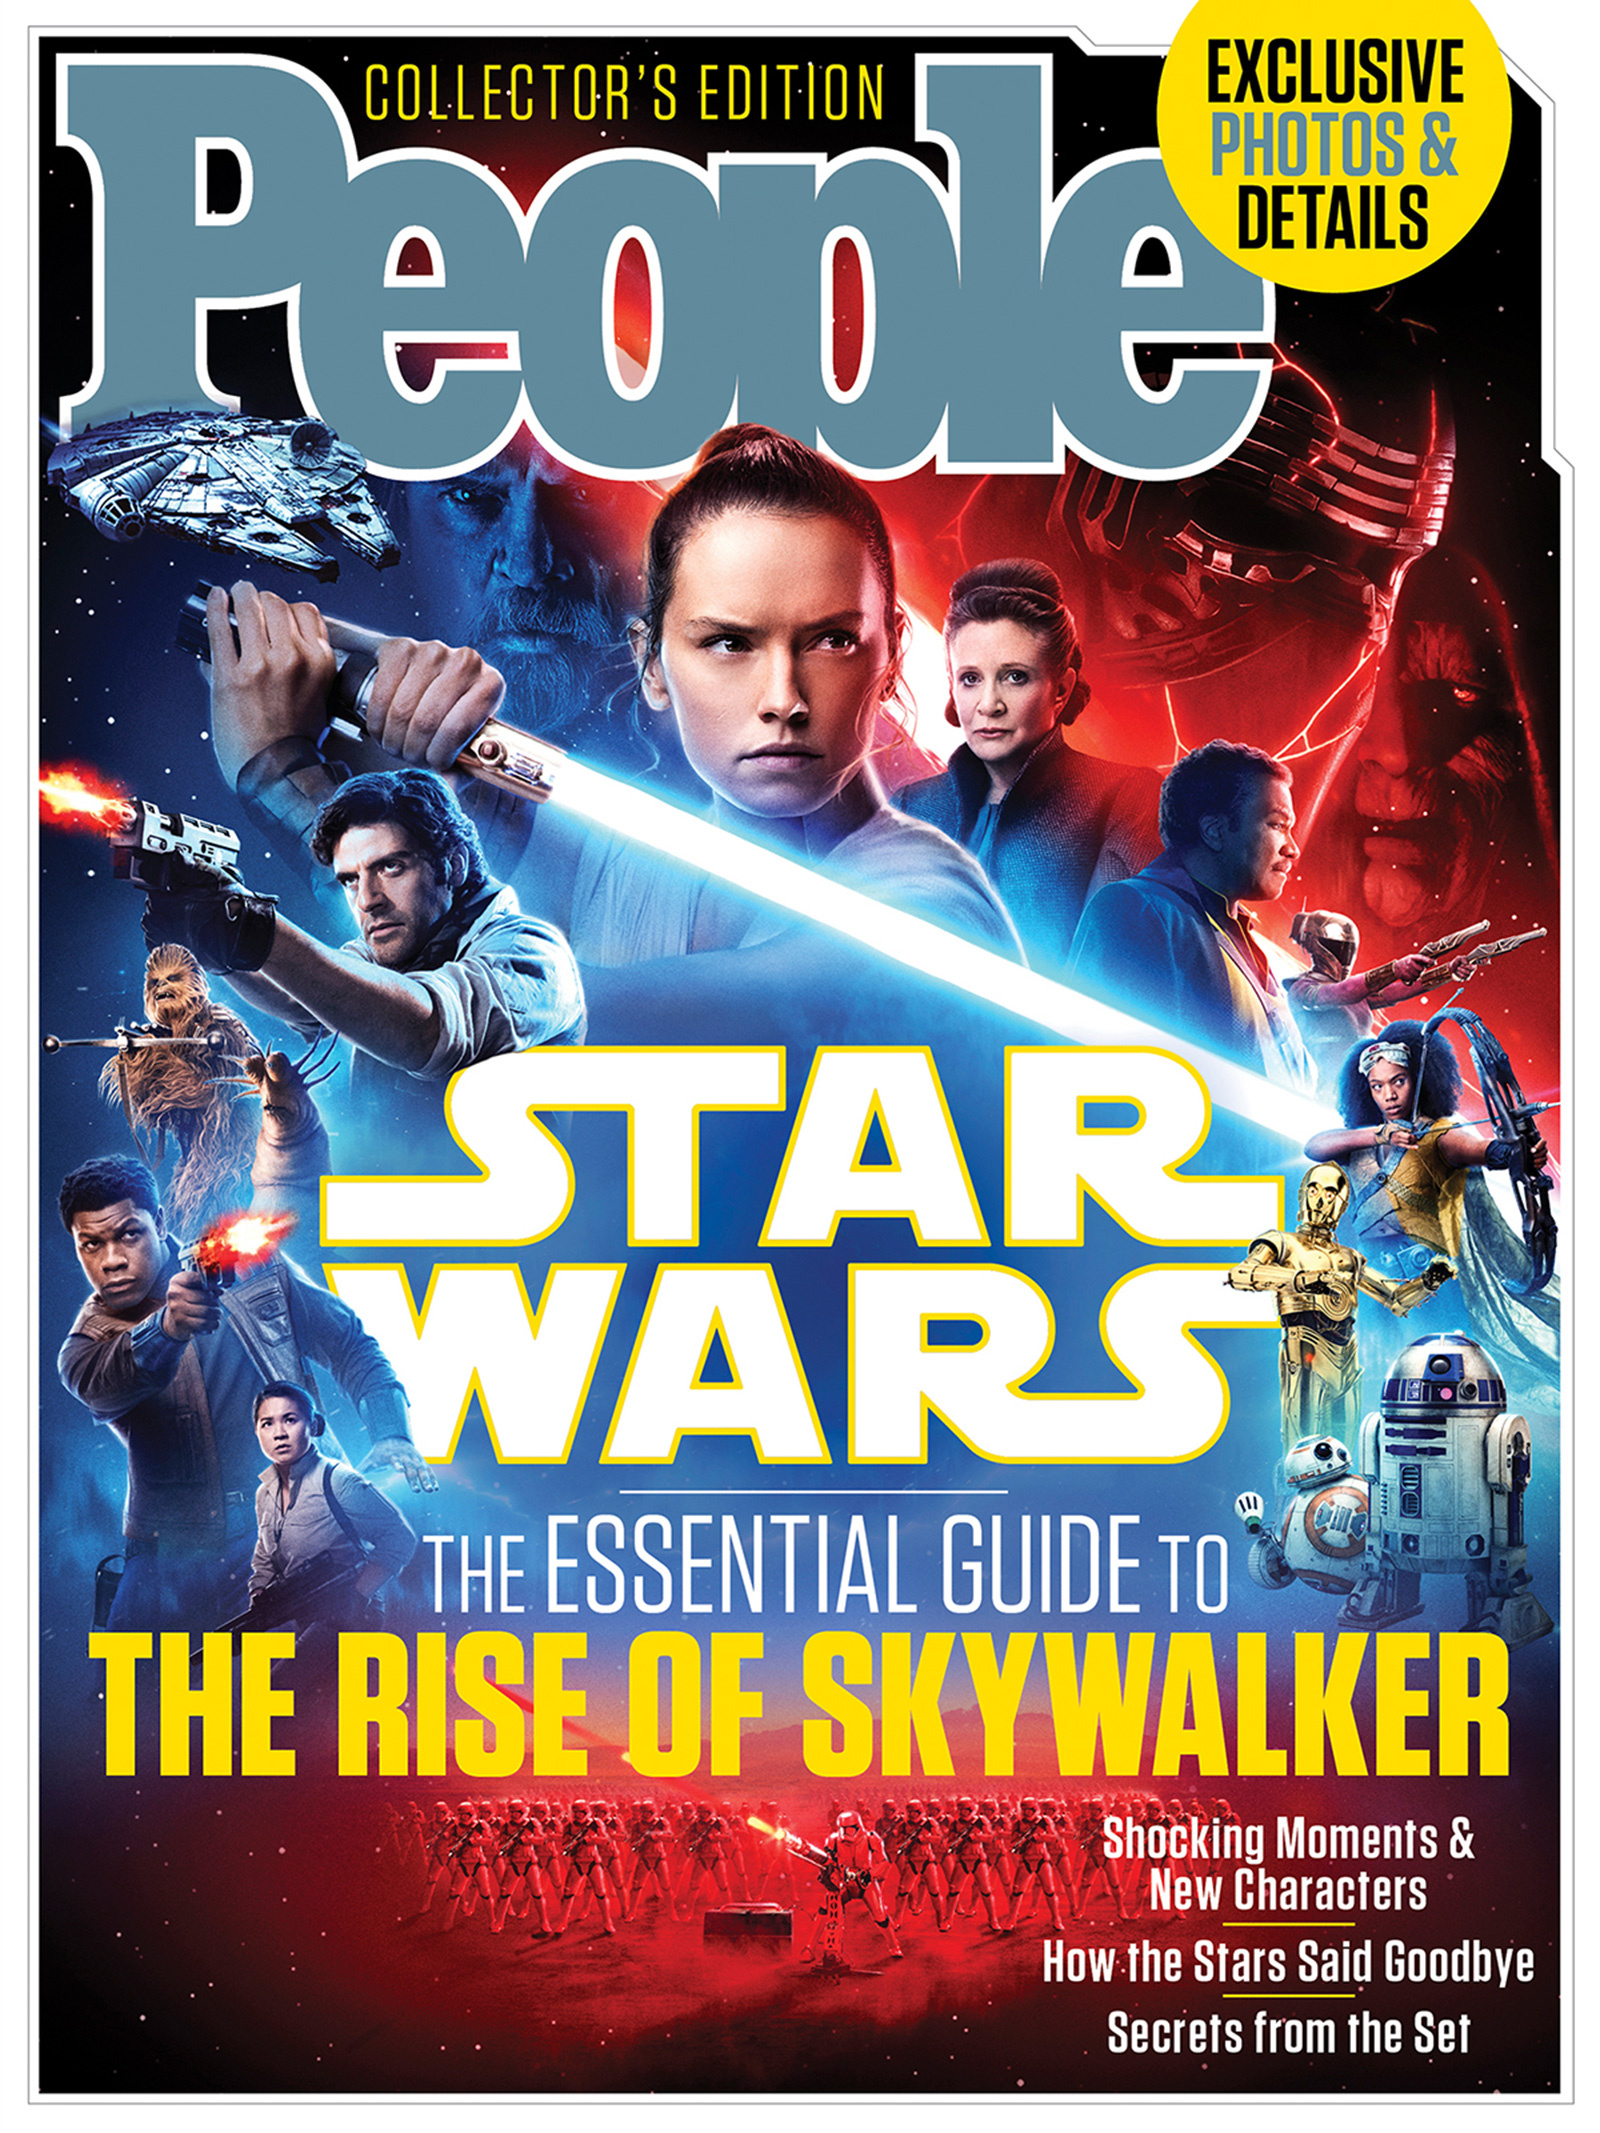 People Magazine's Star Wars: The Rise of Skywalker